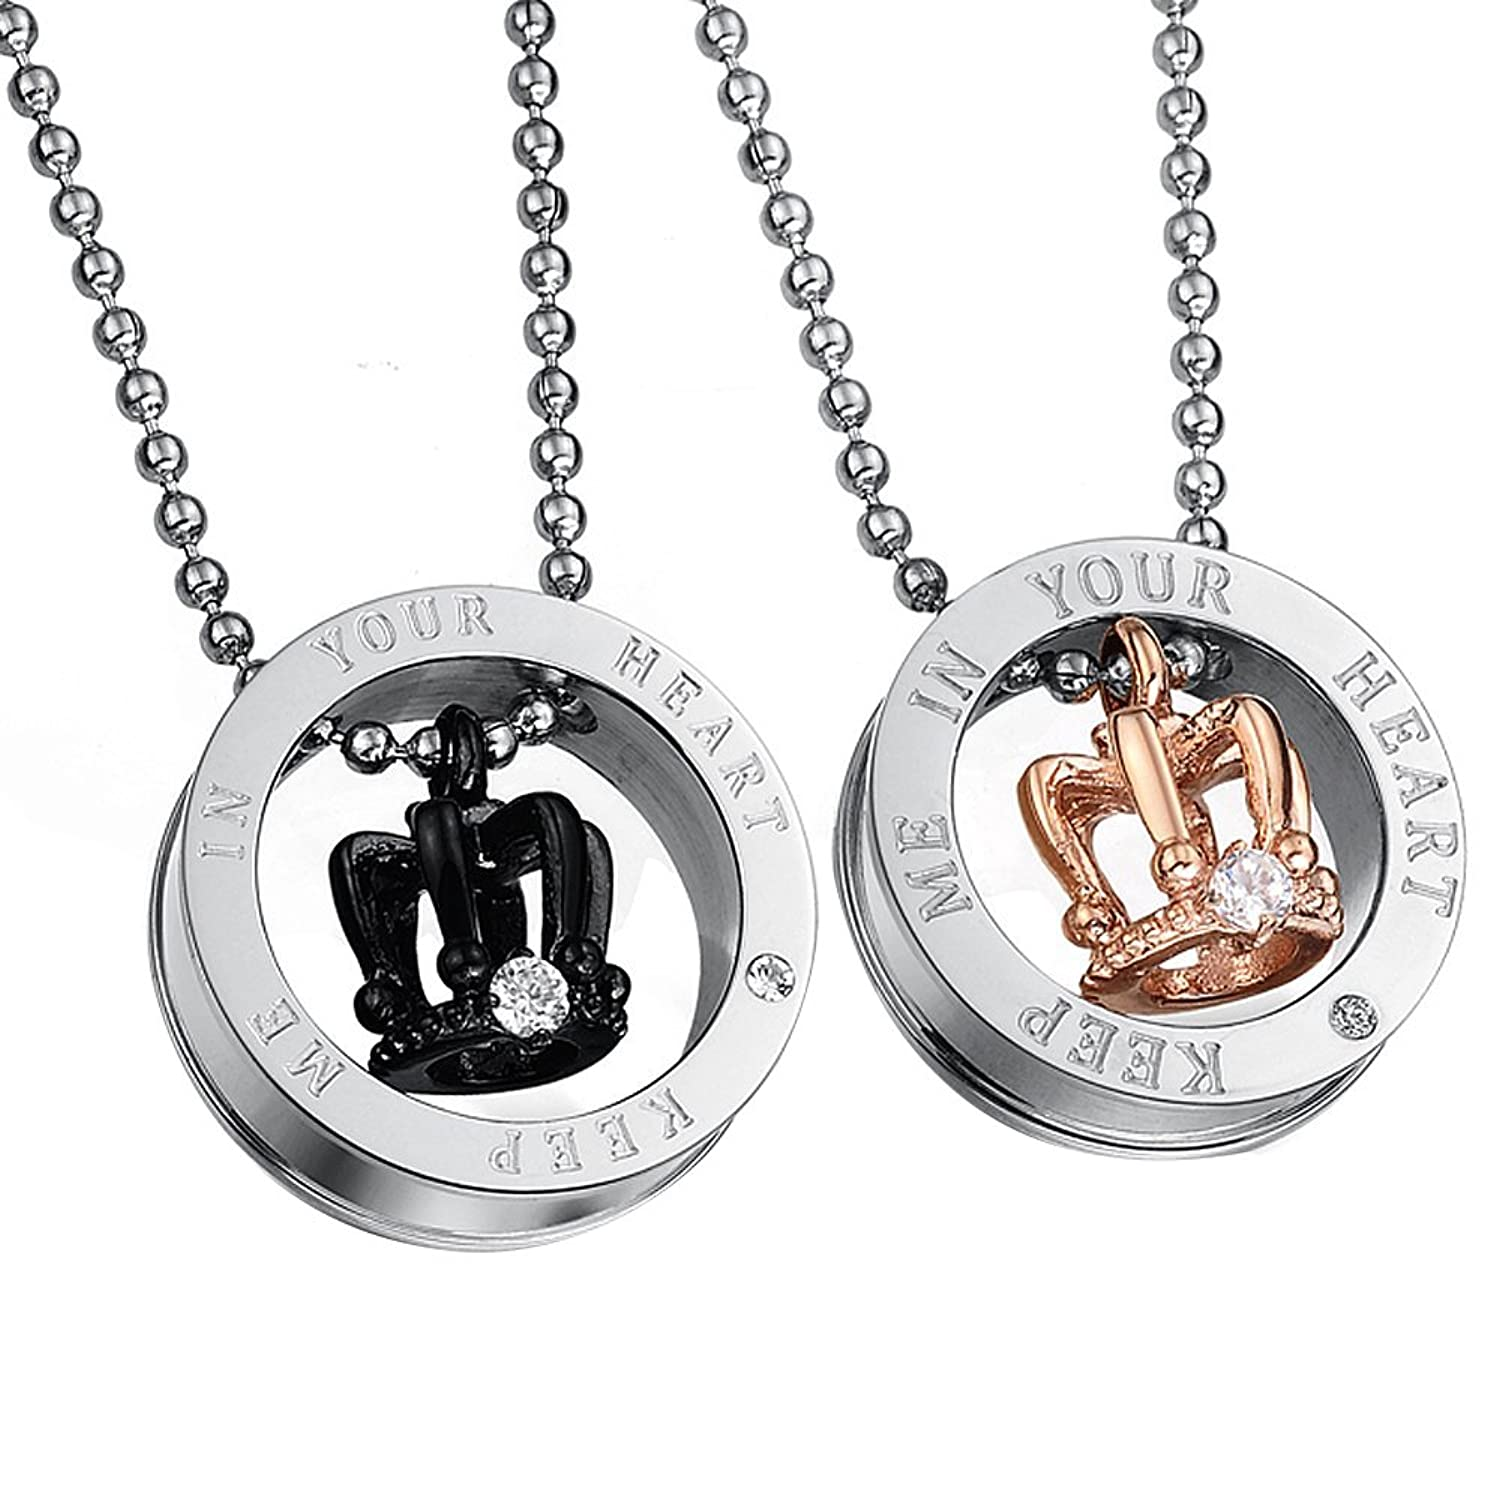 Stunning 2pcs Royal His & Hers Couples Gift Crown Pendant Love Necklace Set for Lover Valentine